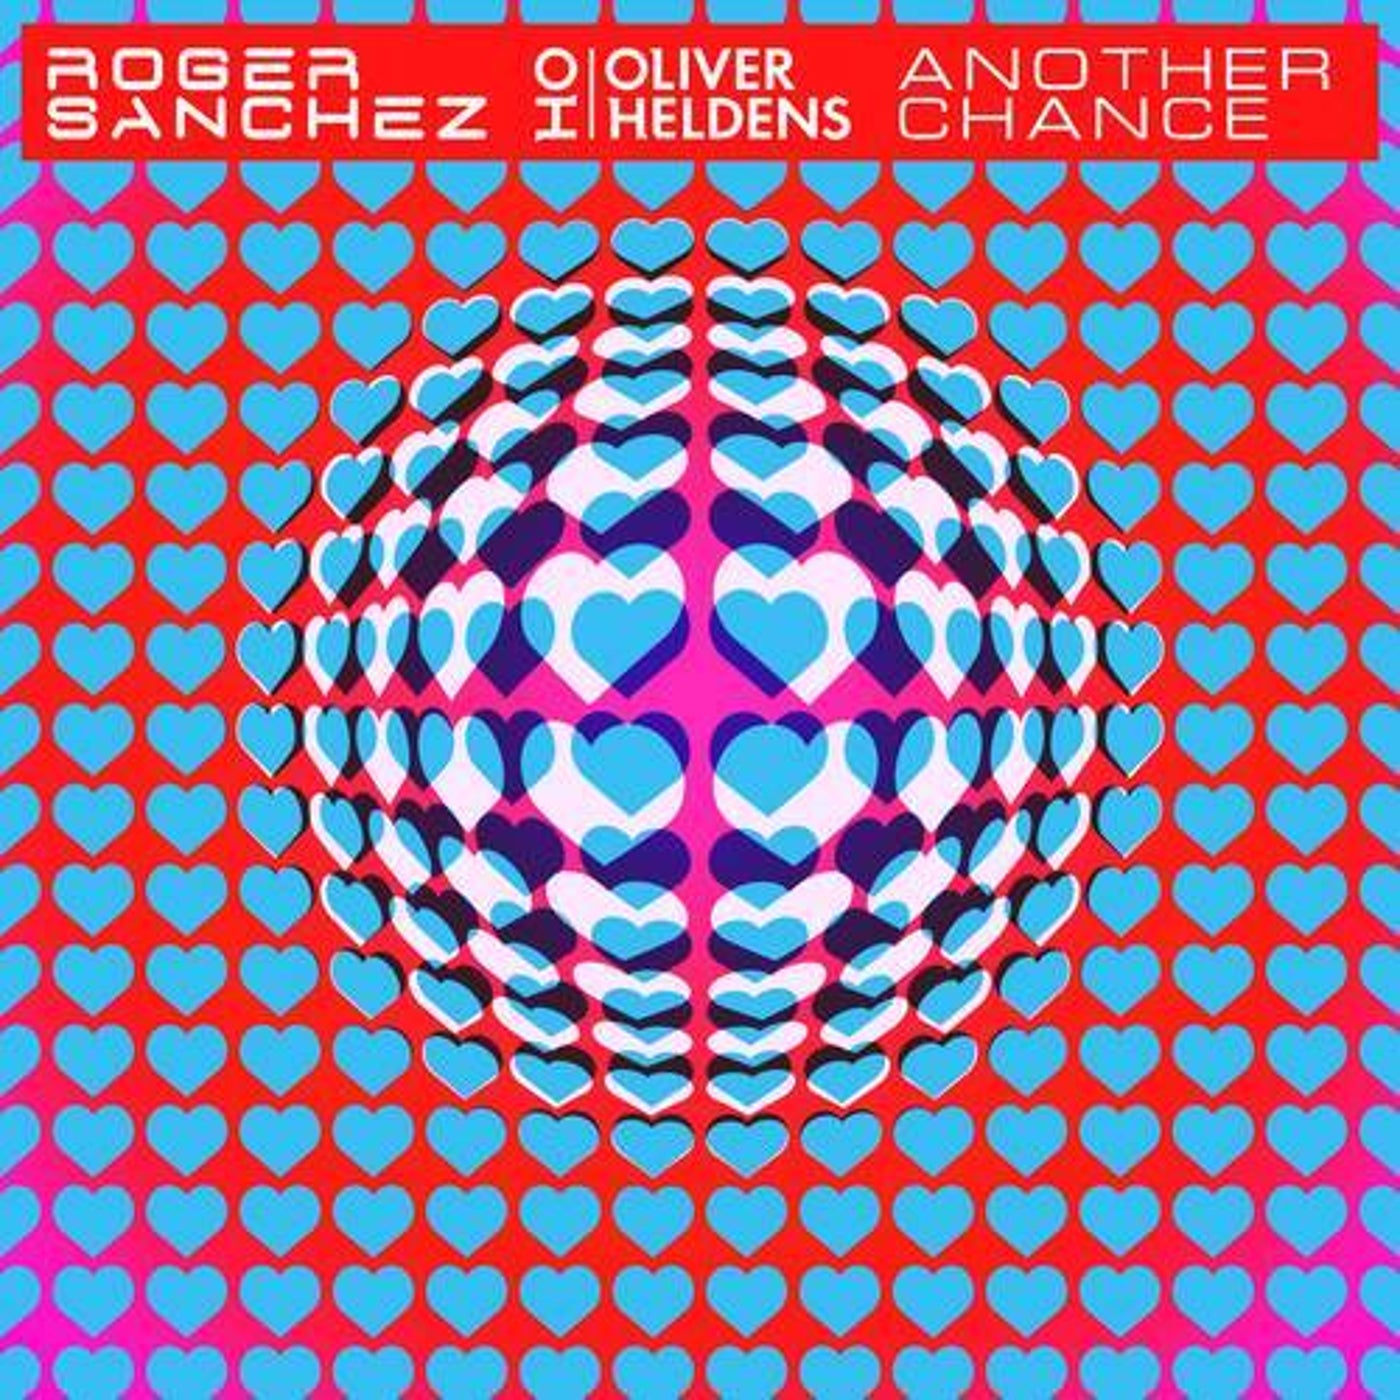 Another Chance (Extended)